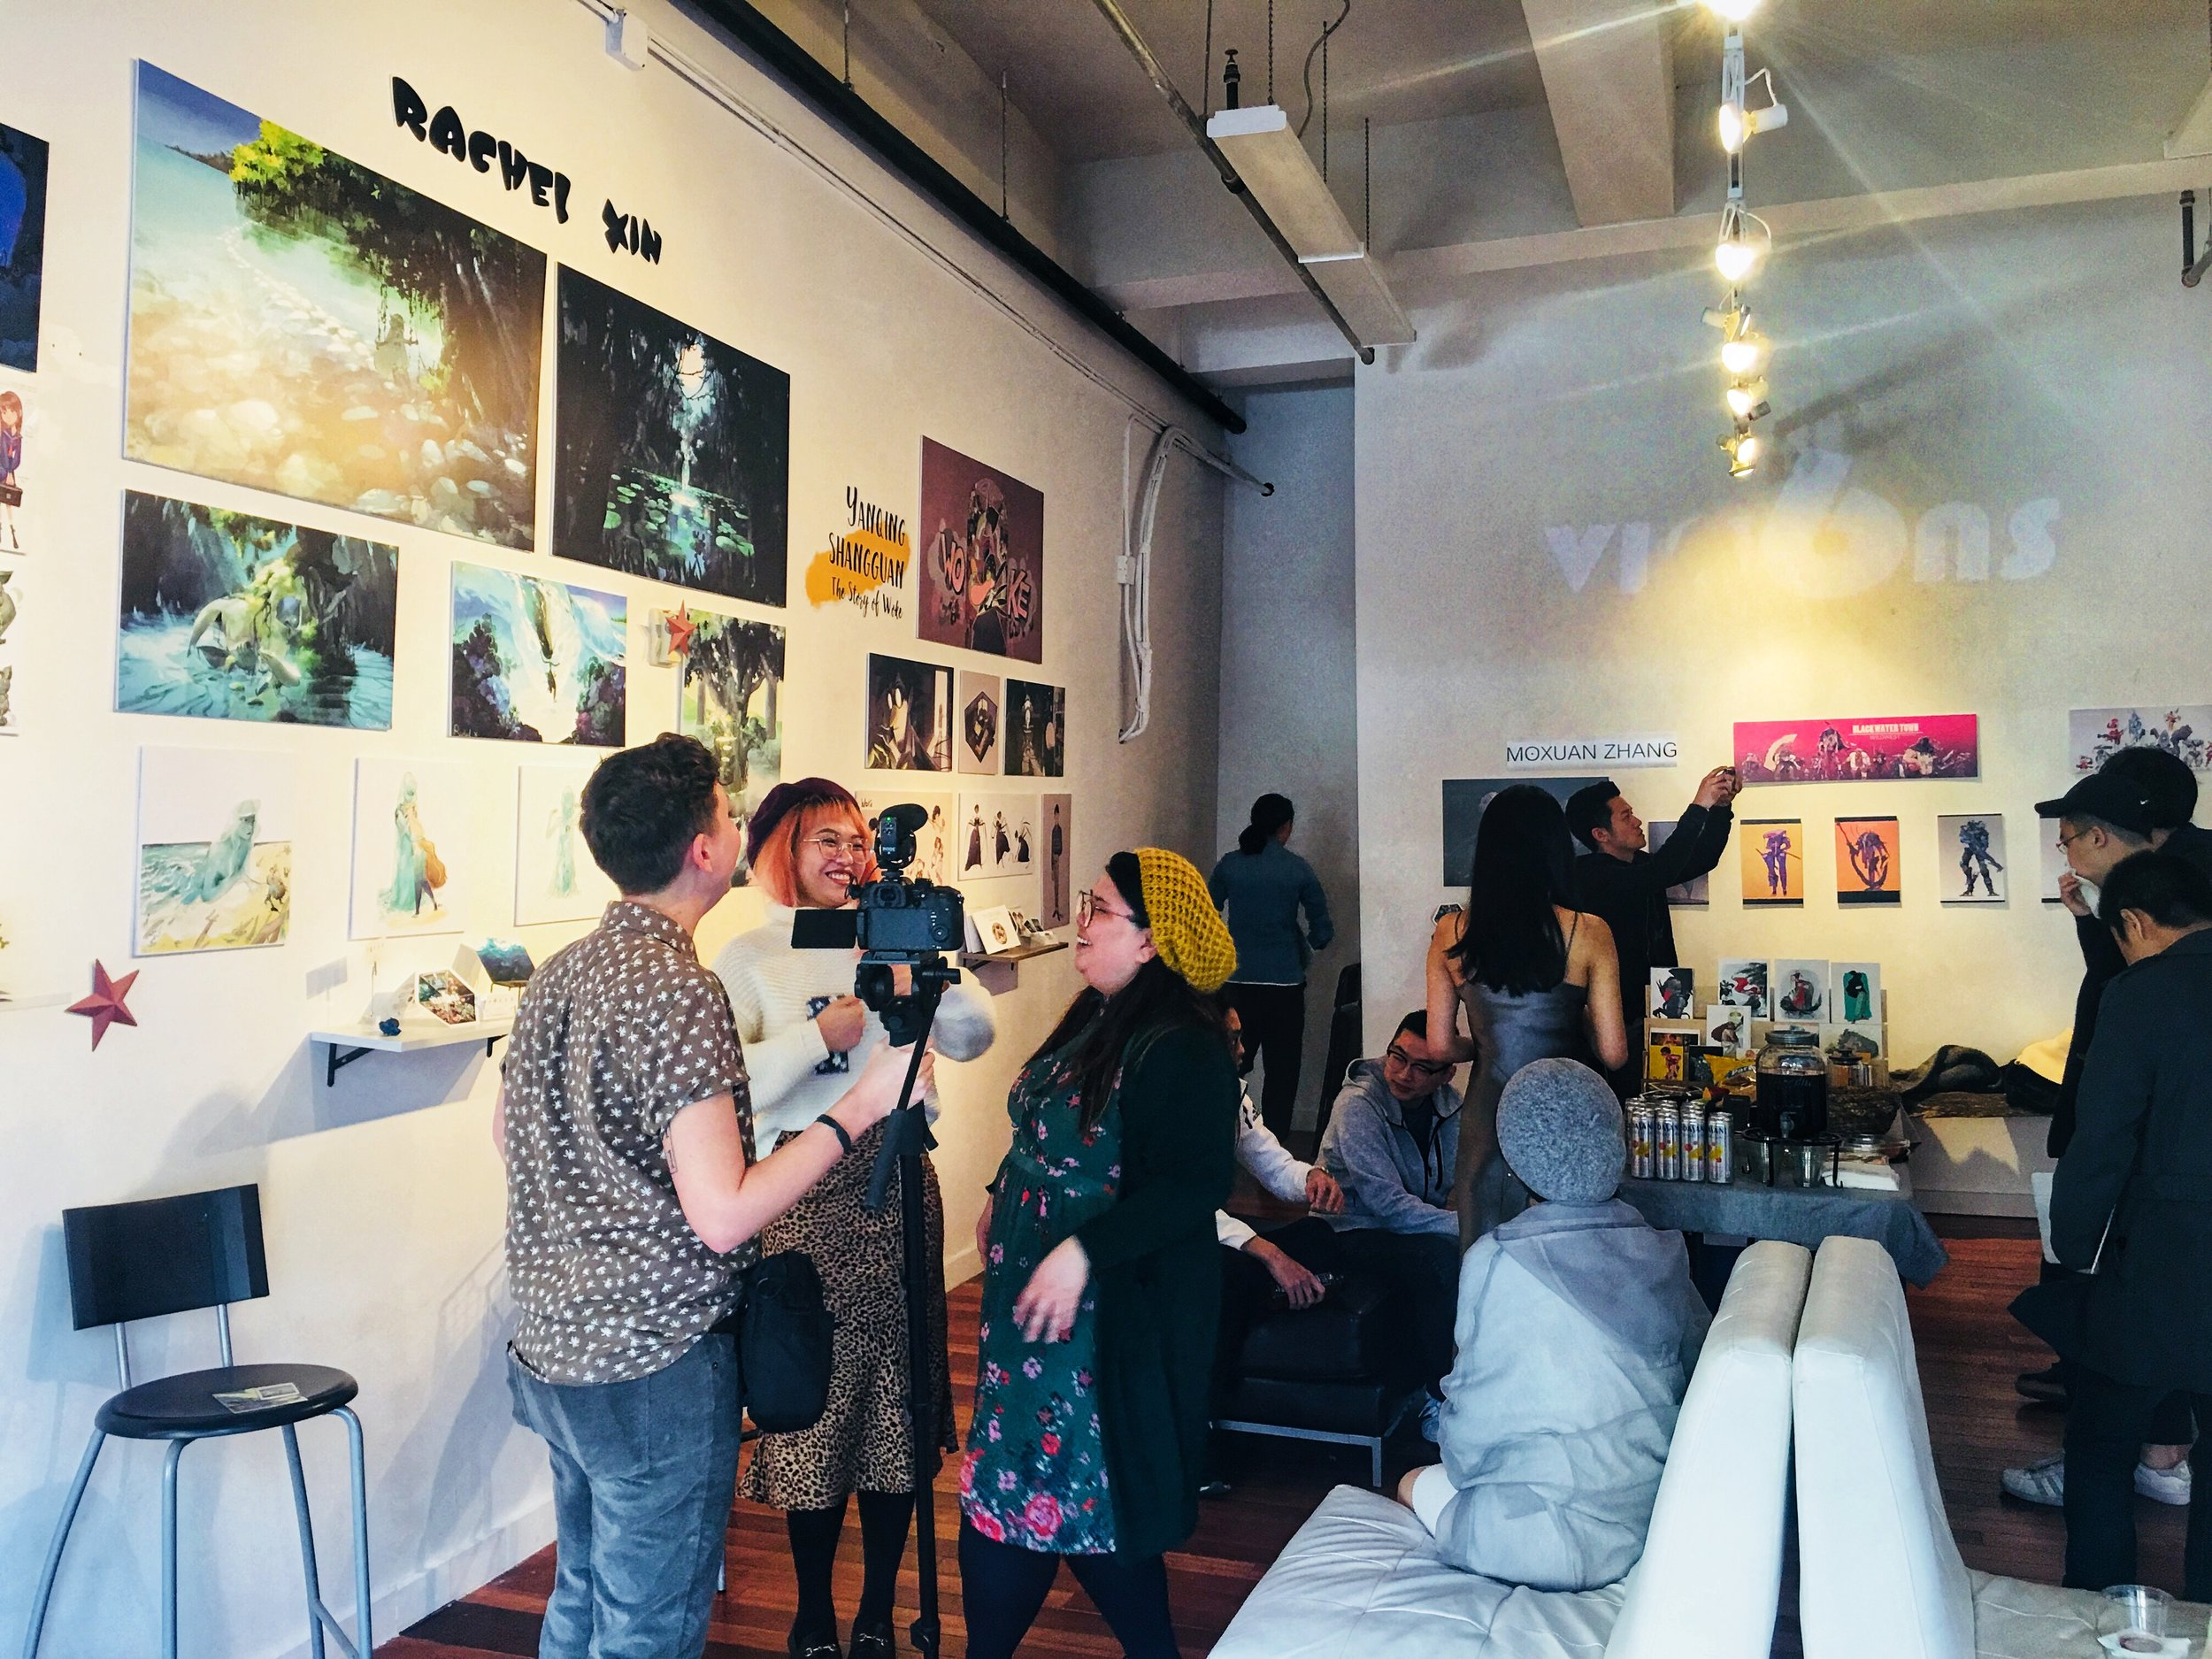 6 VISIONS Art Exhibition, Opening Day, Mar 16th 2019